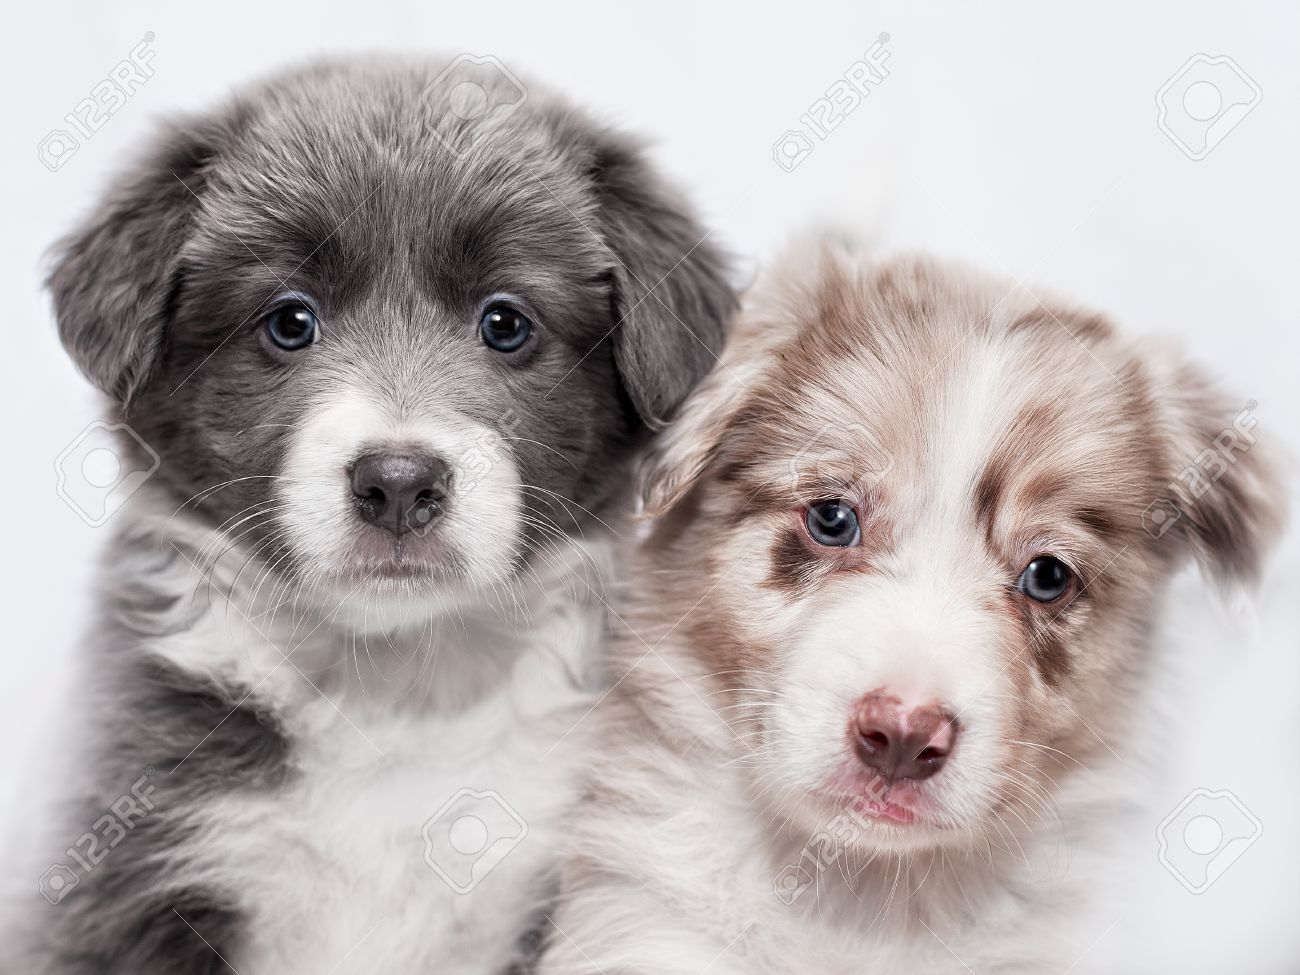 Portrait Of Two Puppies Of Breed Border Collie Blue And Spotted Stock Photo Picture And Royalty Free Image Image 55810237